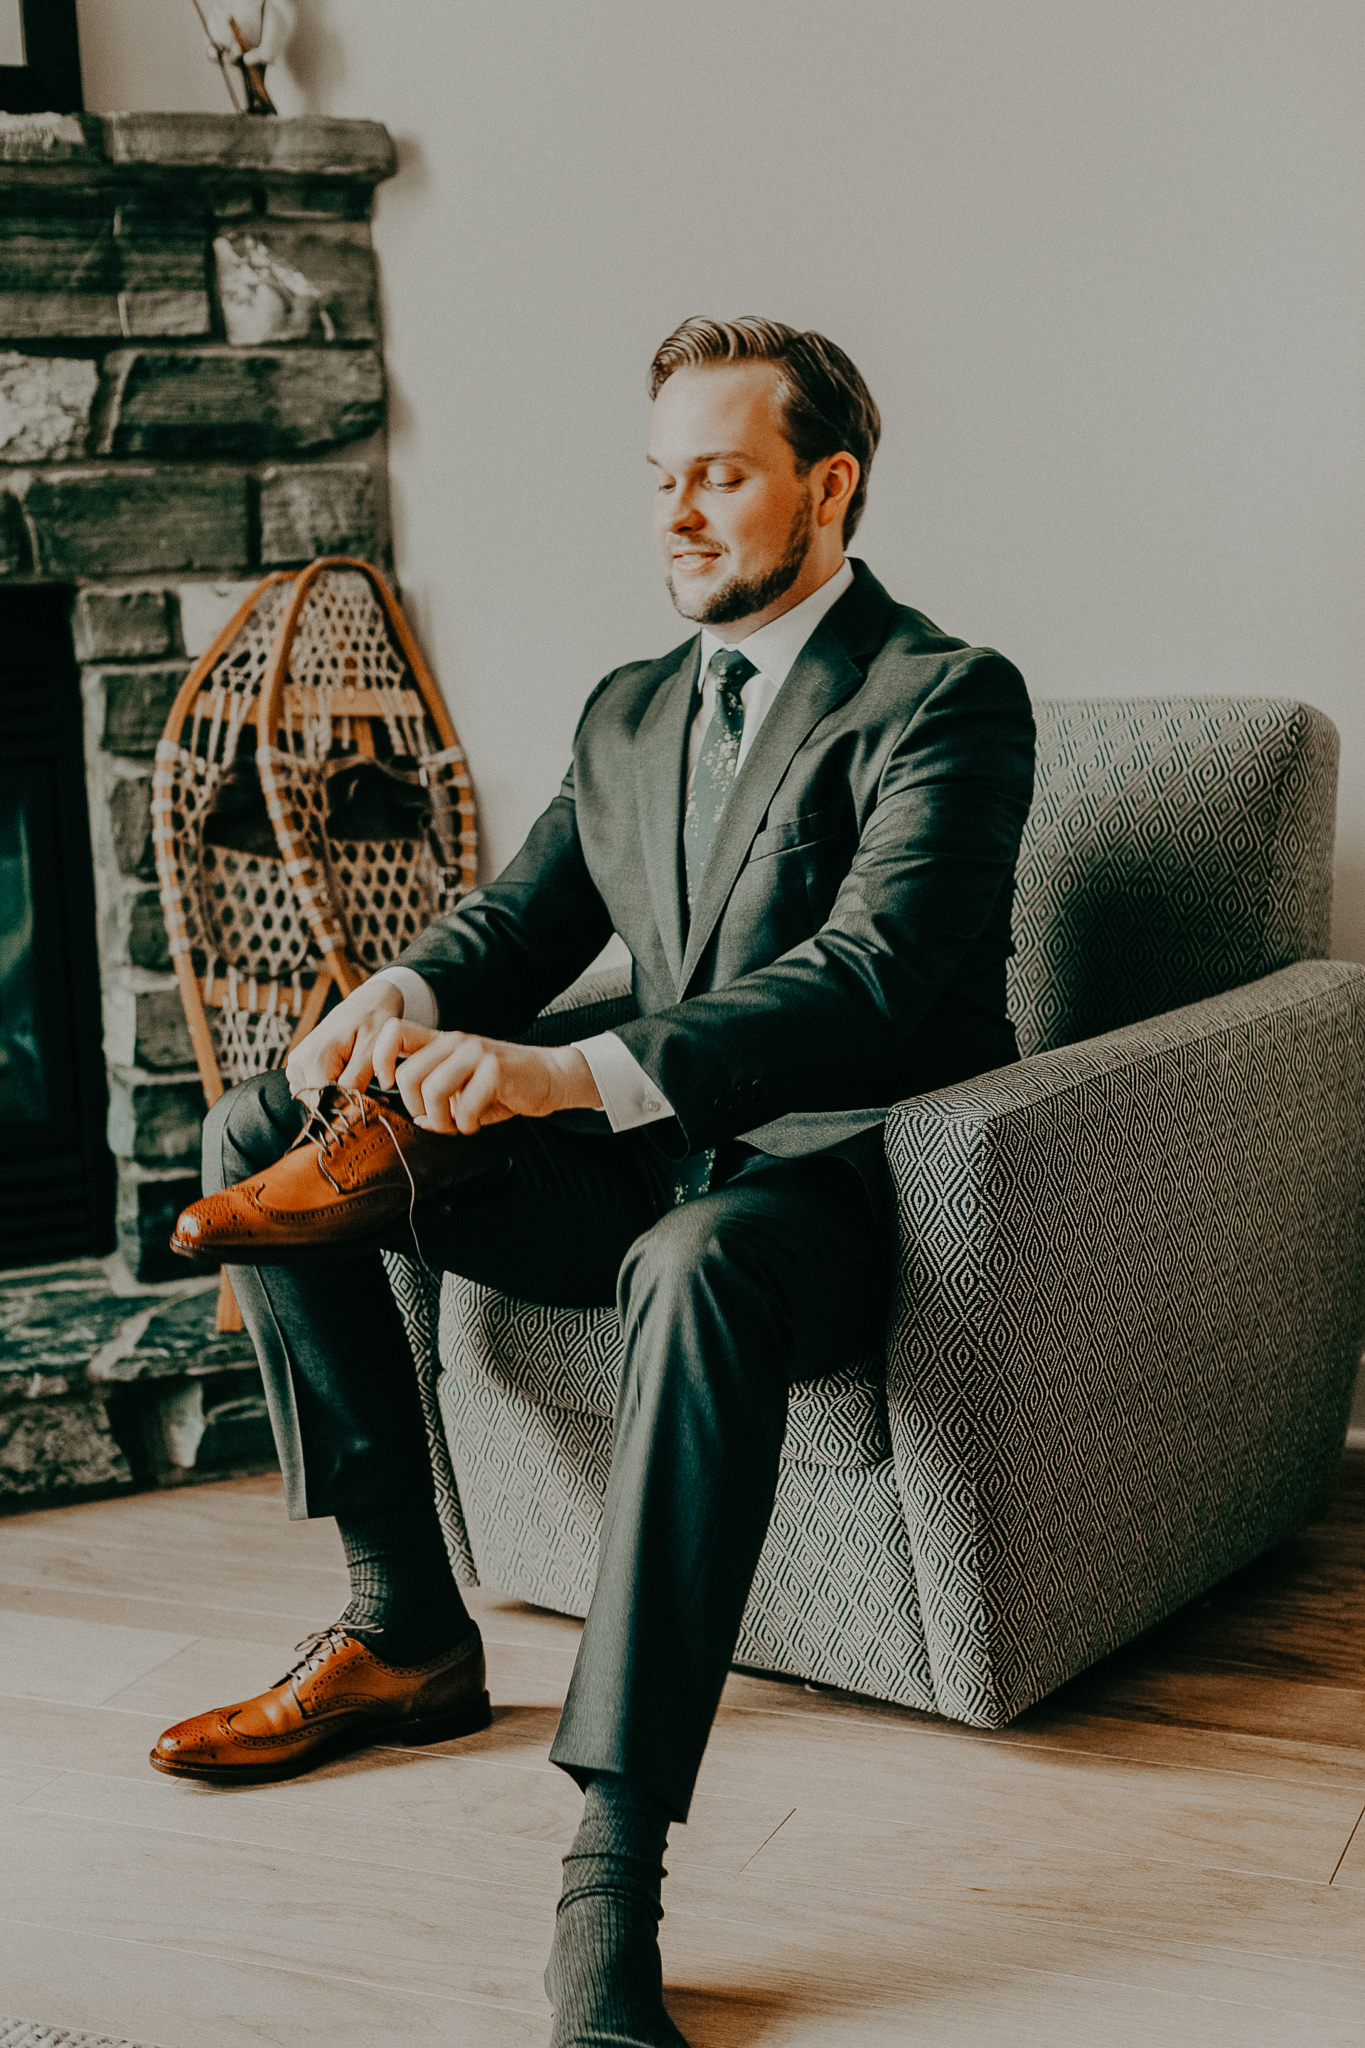 Groom sits on grey chair in grey suit and puts on brown dress shoes